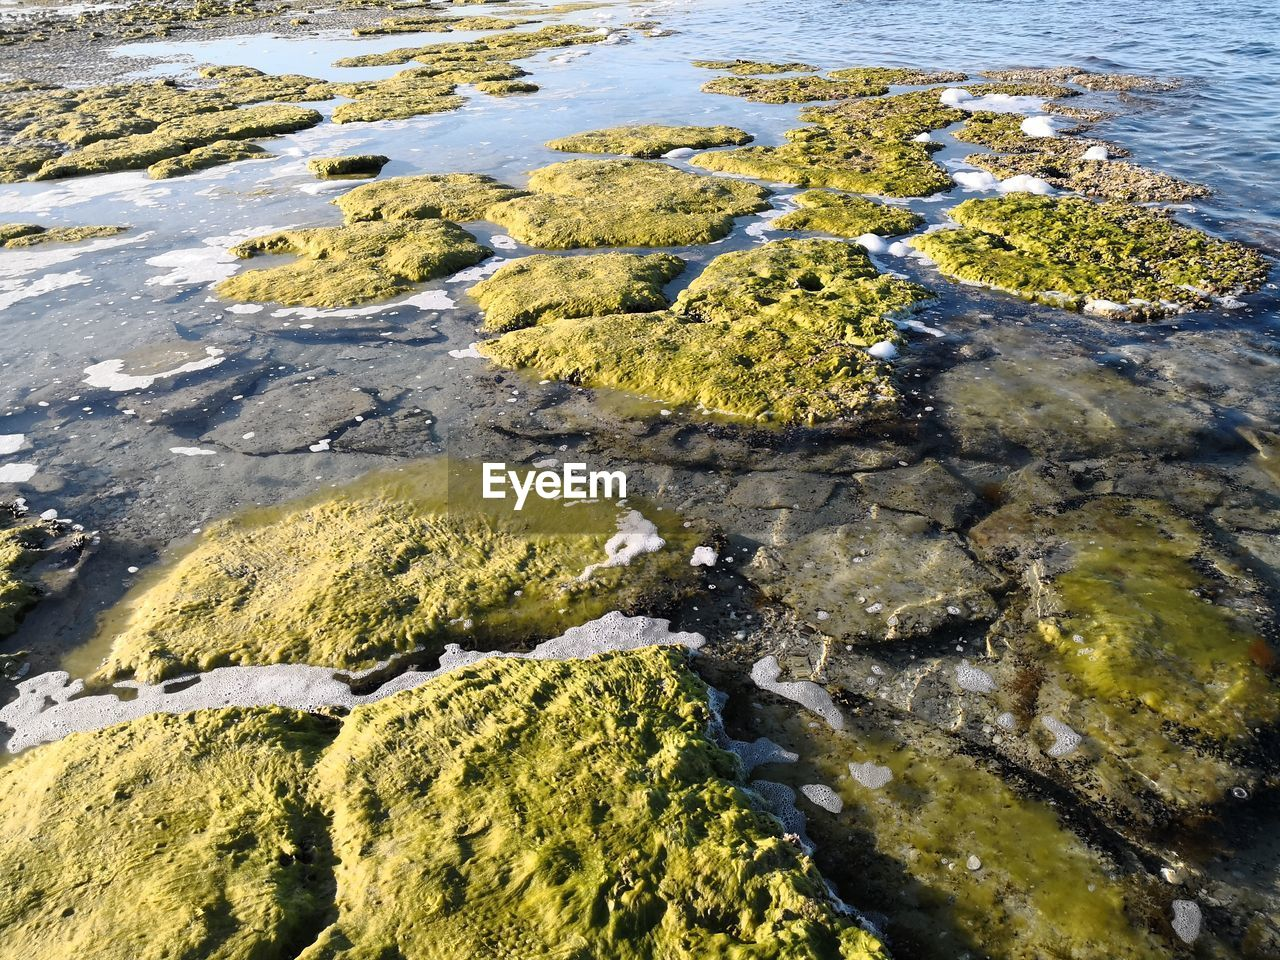 water, nature, algae, day, high angle view, no people, beach, outdoors, moss, rock - object, beauty in nature, tranquility, shallow, sea, close-up, pebble beach